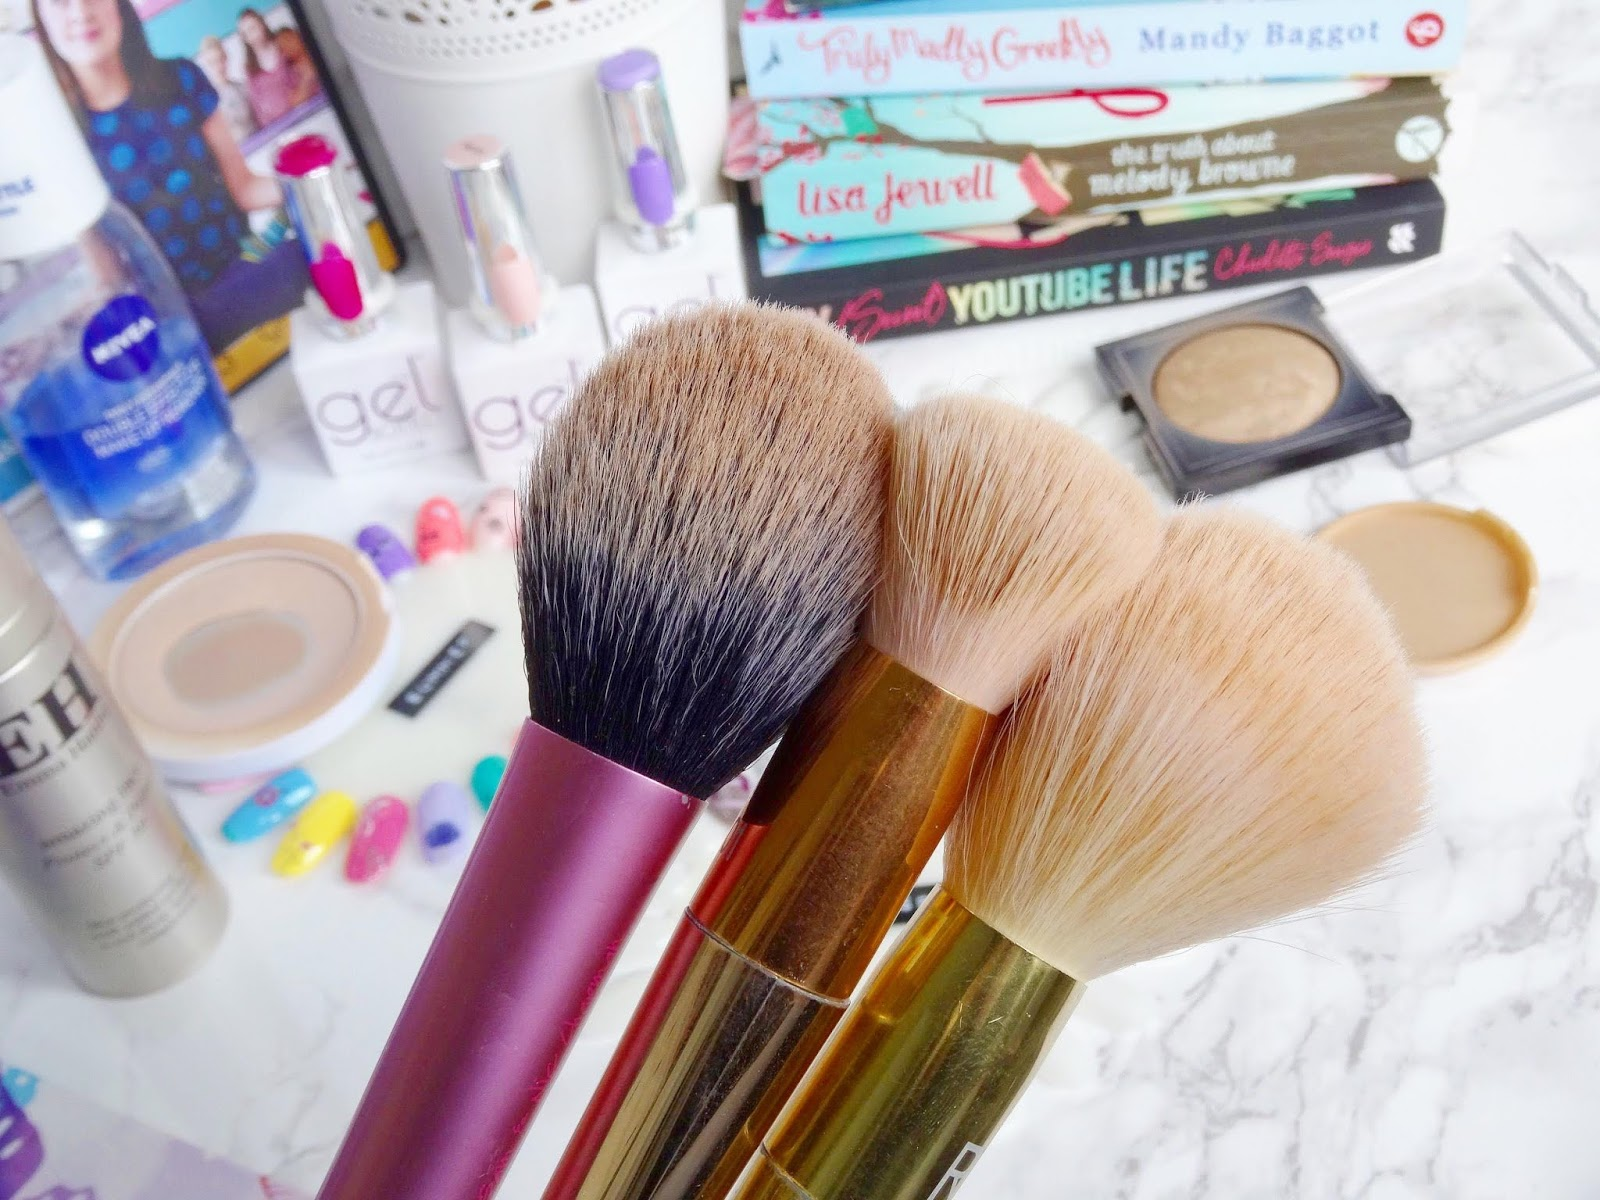 Washing Real Techniques Makeup Brushes